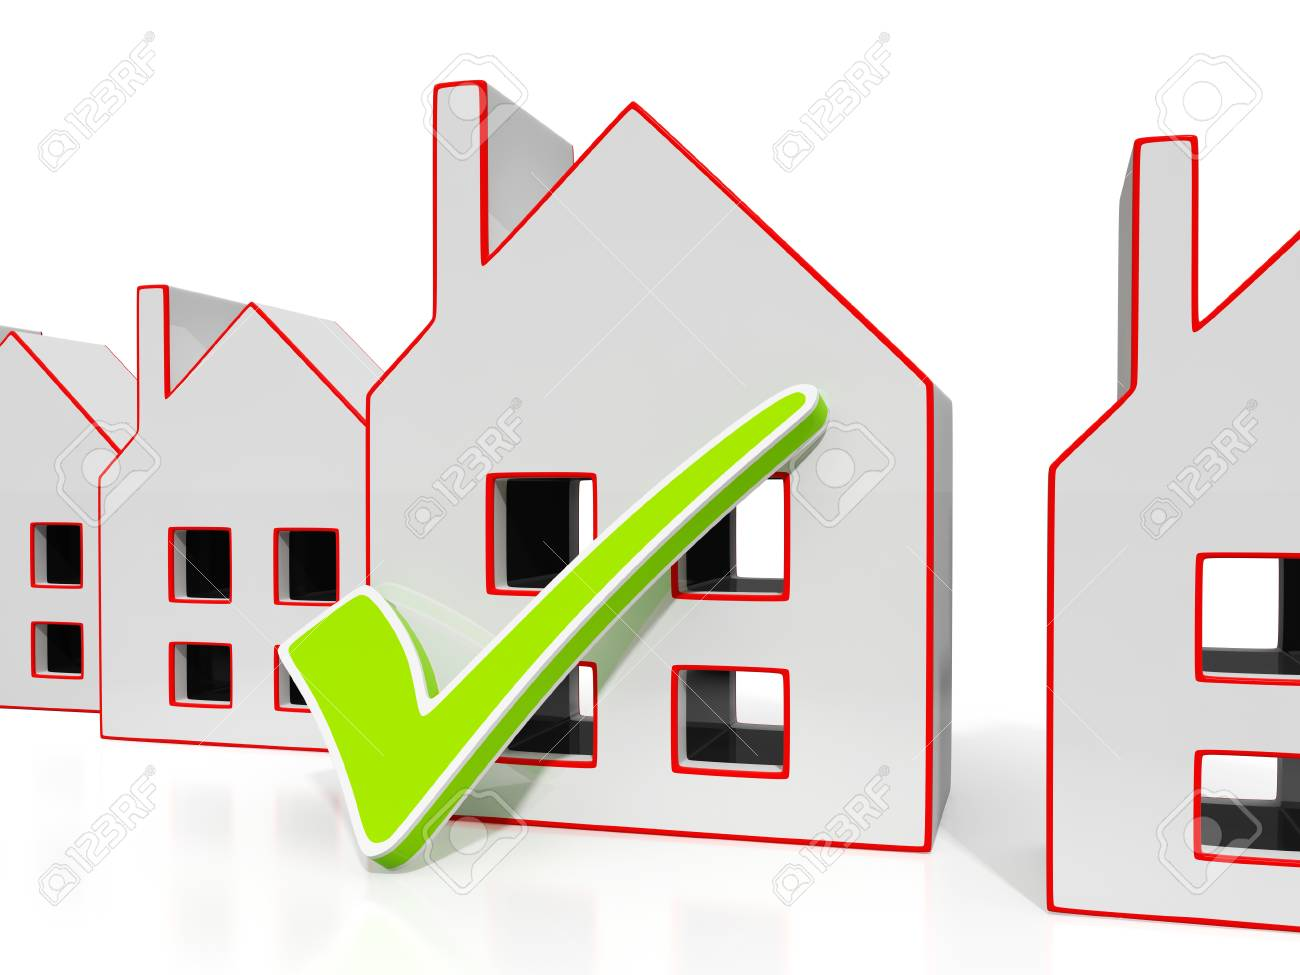 House Icons With Tick Showing House Or Building For Sale Stock Photo - 22640155